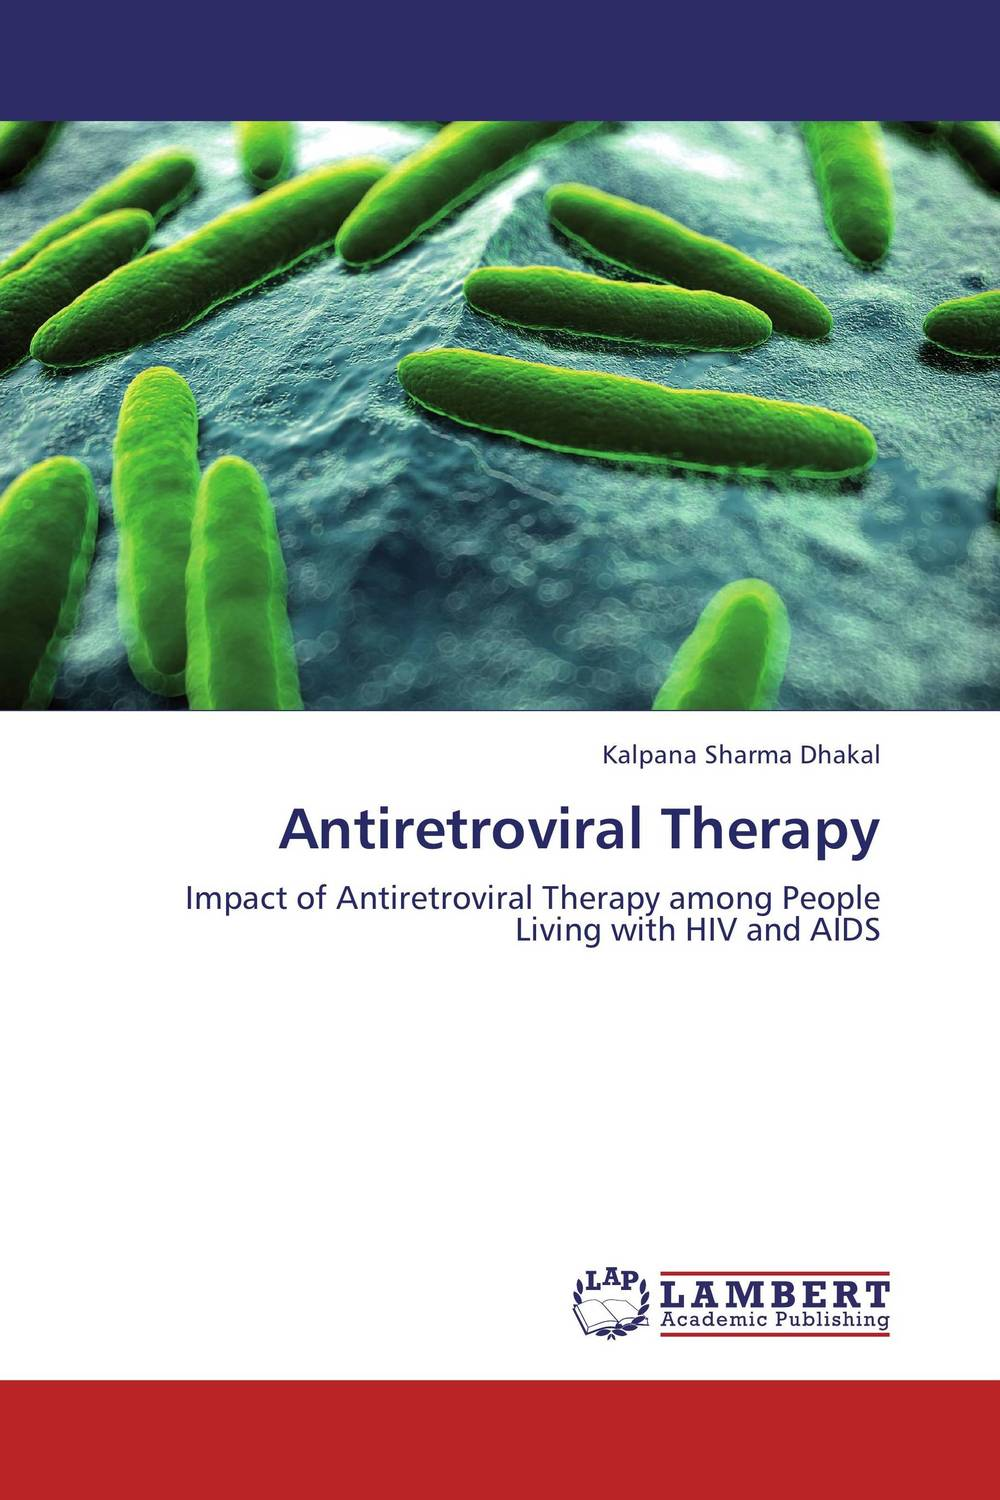 Antiretroviral Therapy physical therapy care for people living with hiv aids